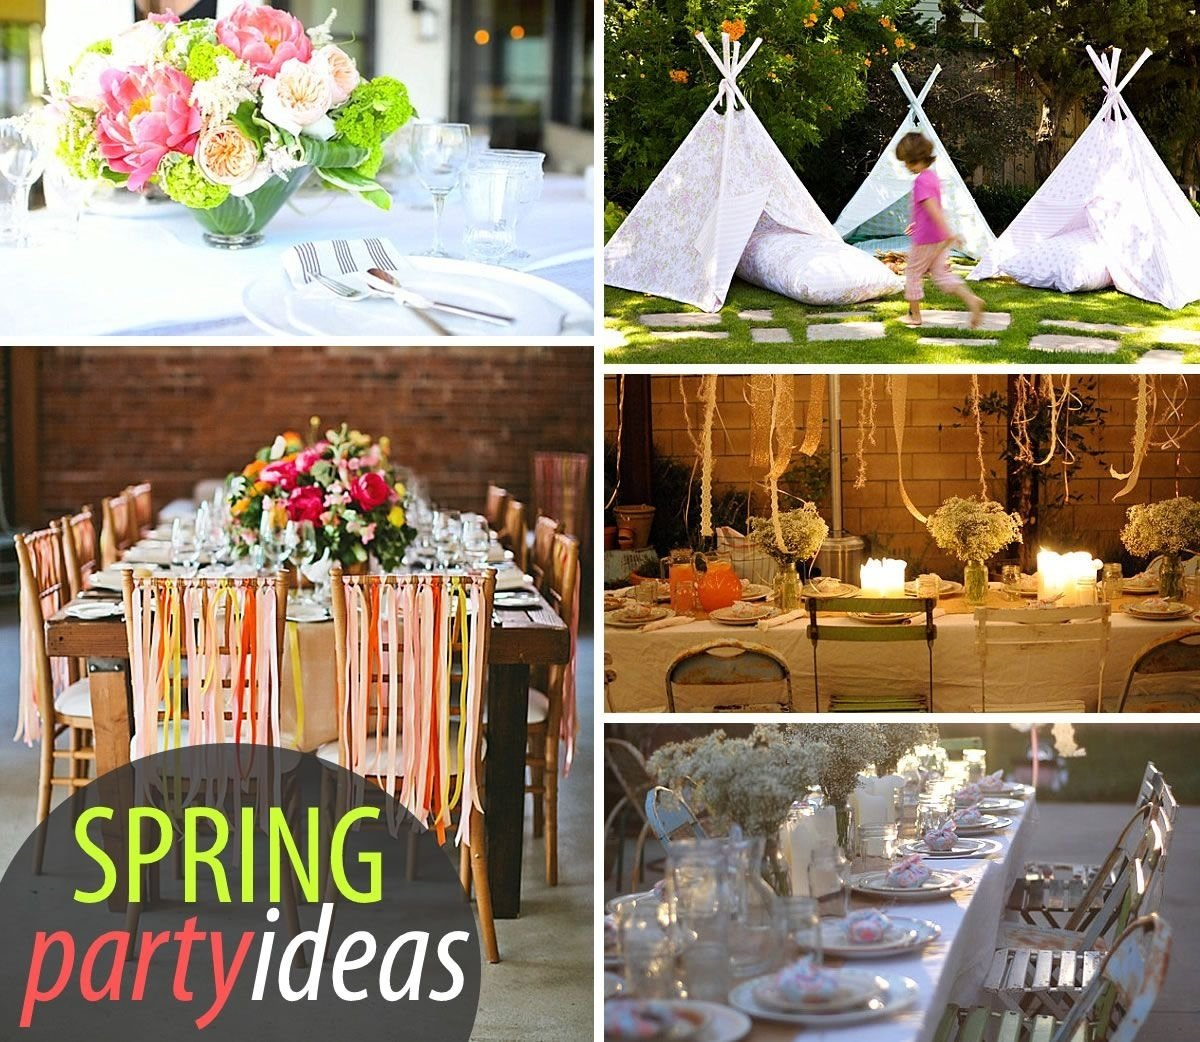 20 colorful spring party ideas | bday party ideas, party planning